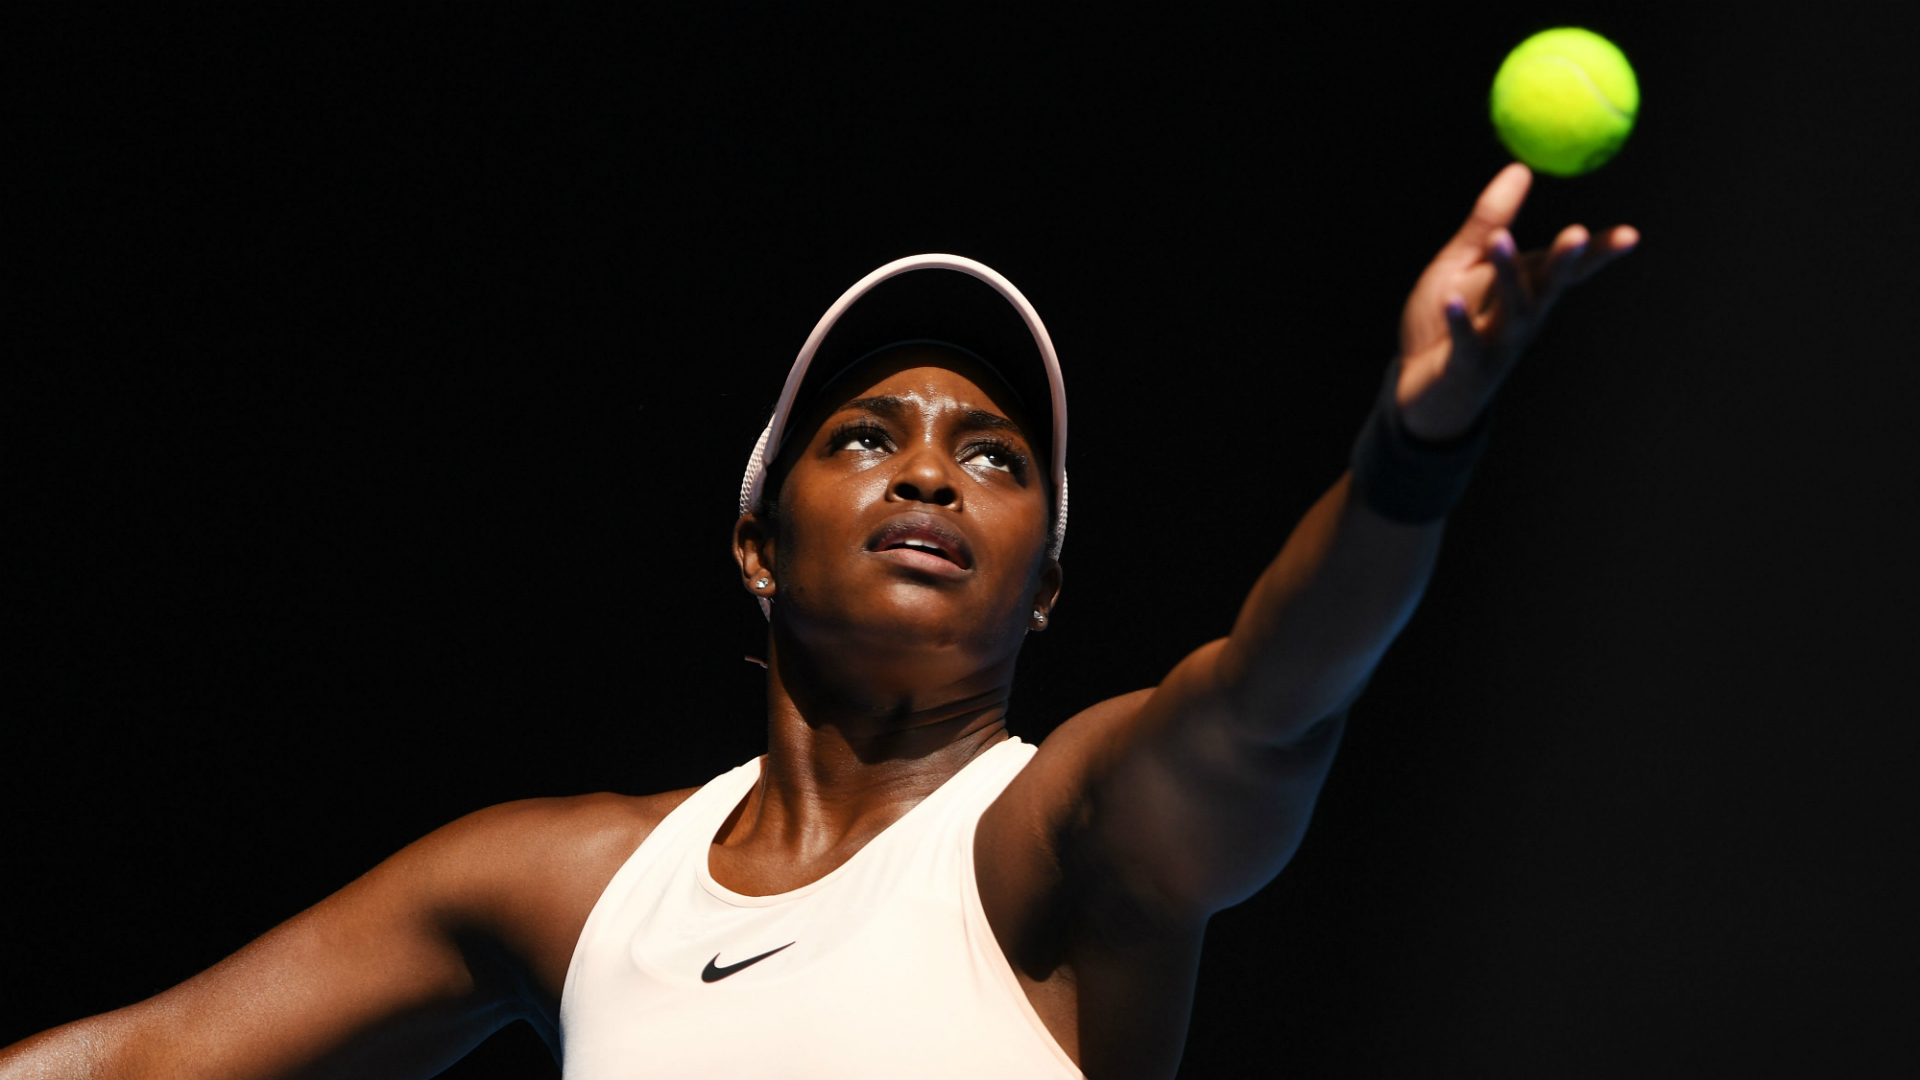 US Open champion Sloane Stephens advanced in Acapulco thanks to Wednesday's 5-7 7-6 (8-6) 6-0 victory over Dutch qualifier Arantxa Rus.